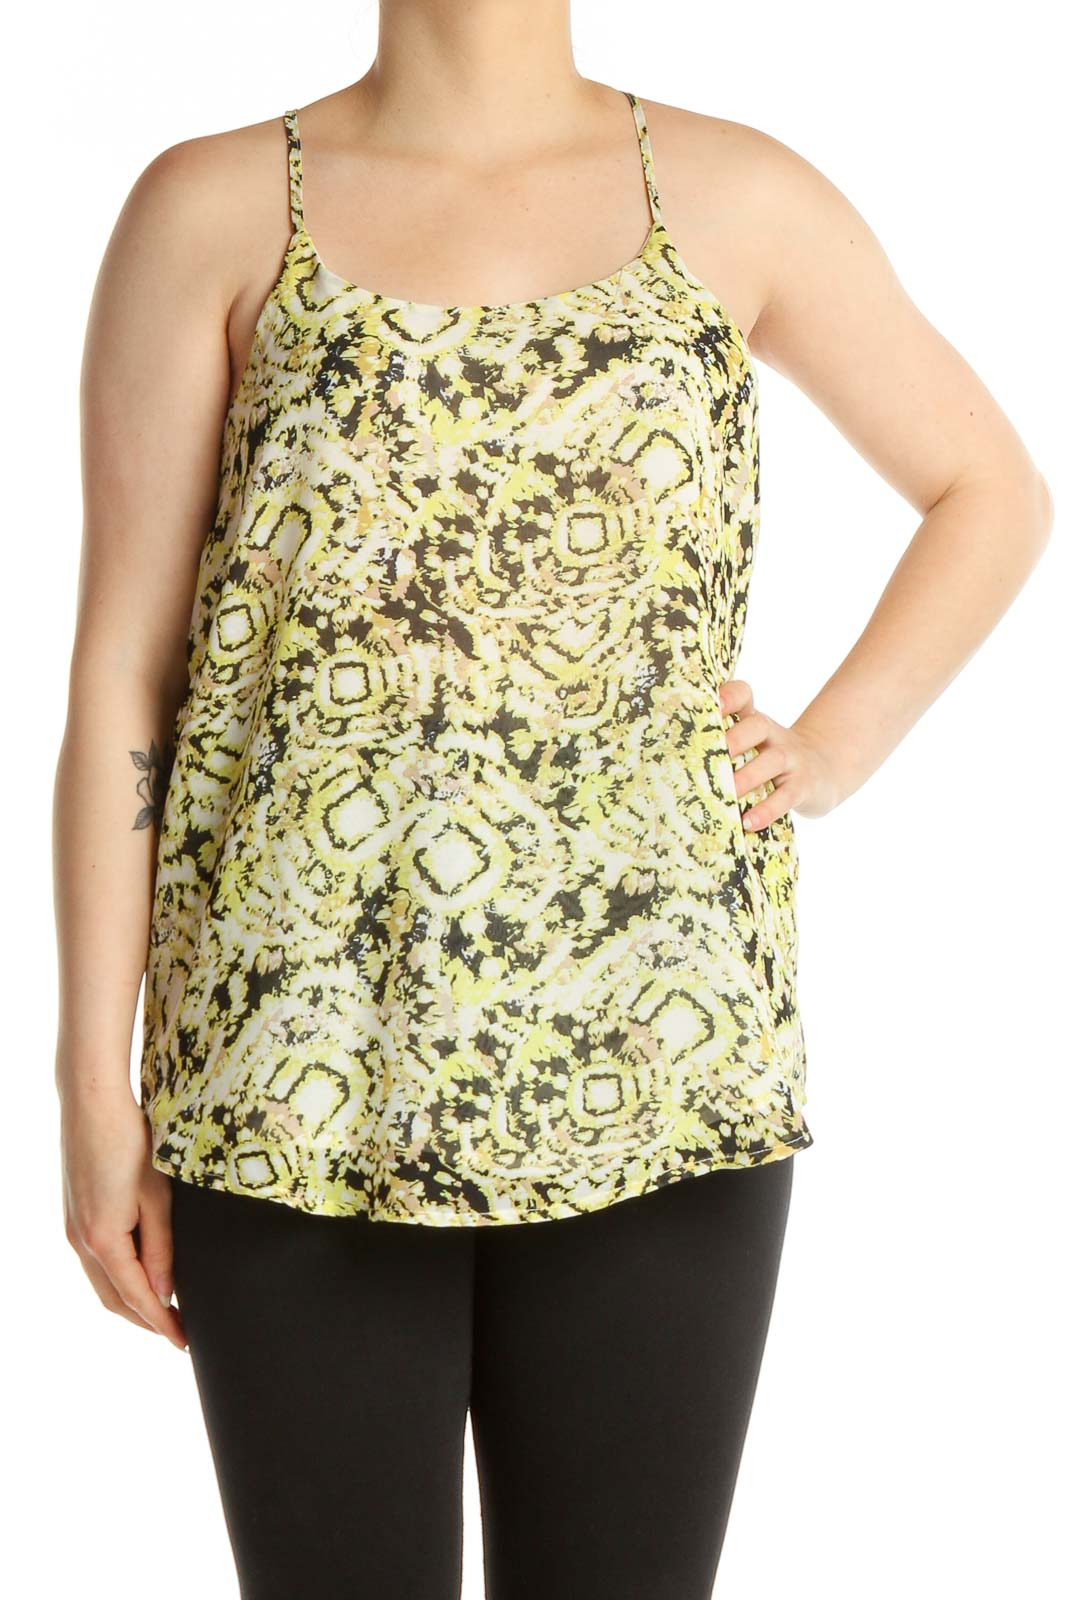 Green Printed Chic Top Front